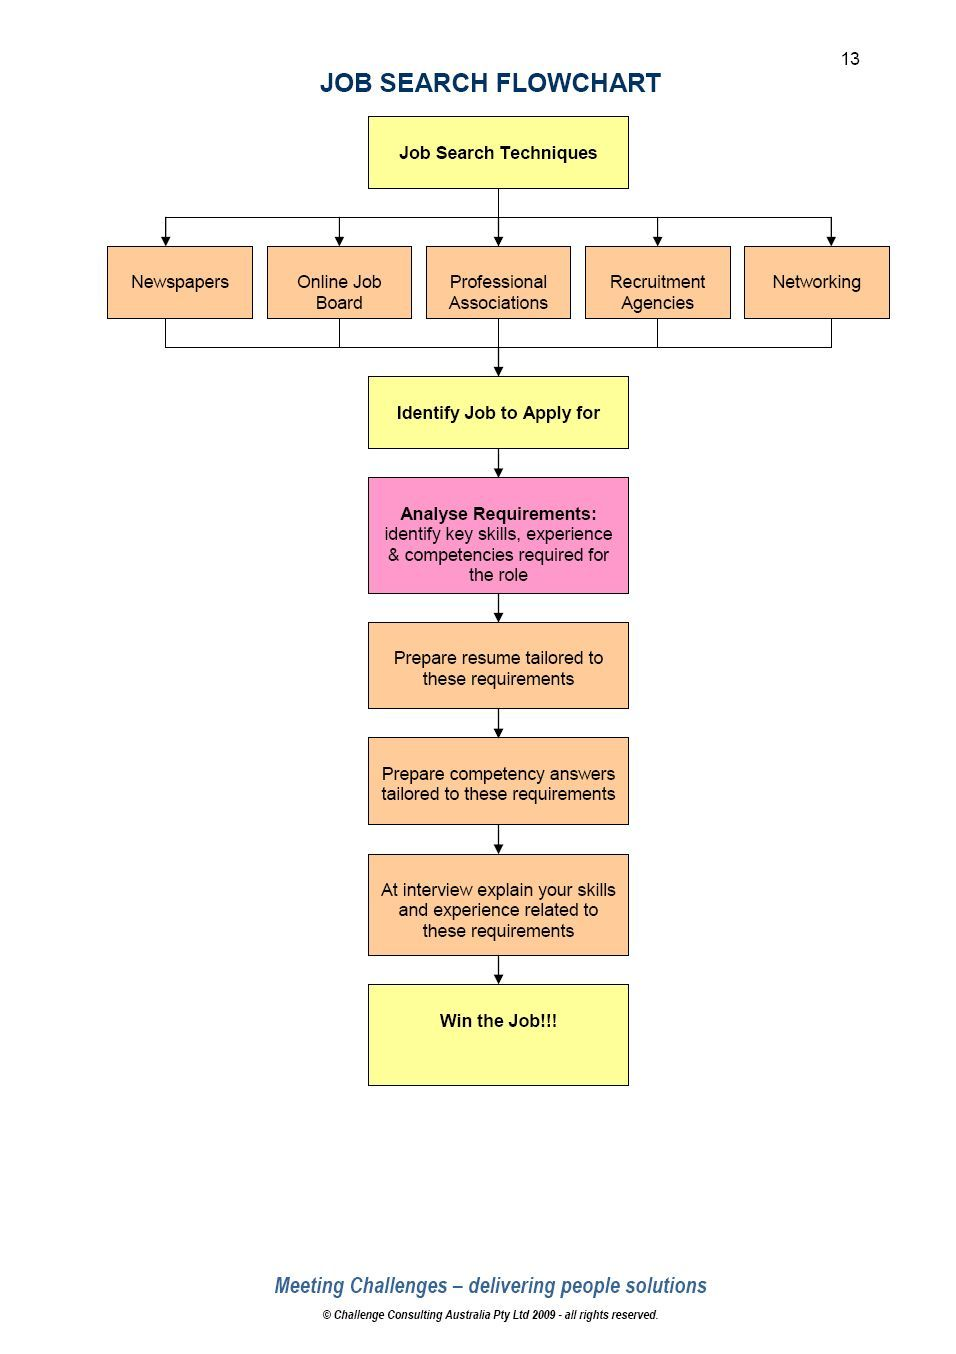 job search flowchart search funny search and videos job search